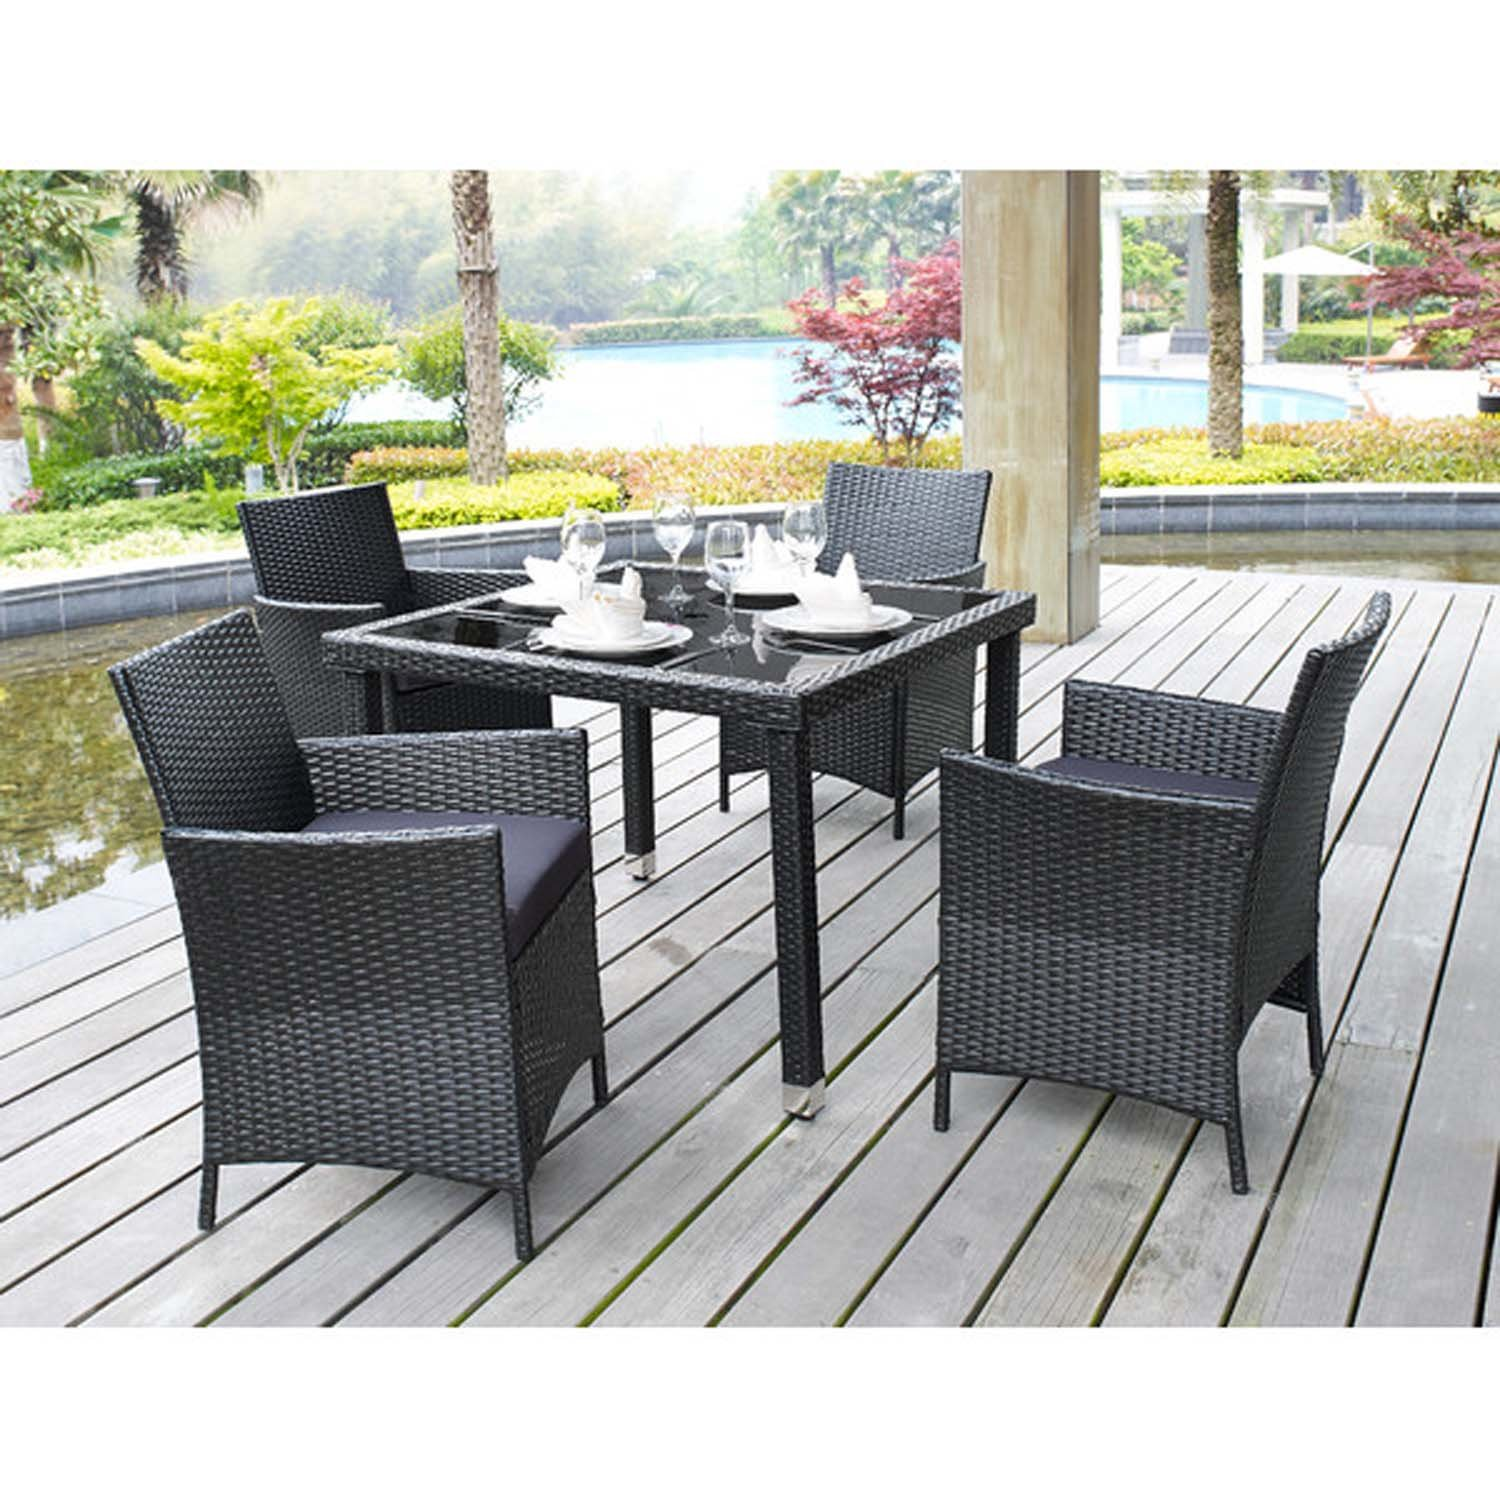 High Quality Amazon.com : 5 Piece Outdoor Patio Dining Set With Cushions   UV Weather  Resistant Rattan Wicker Heavy Duty Steel Powder Coated Furniture    Rectangular ... Design